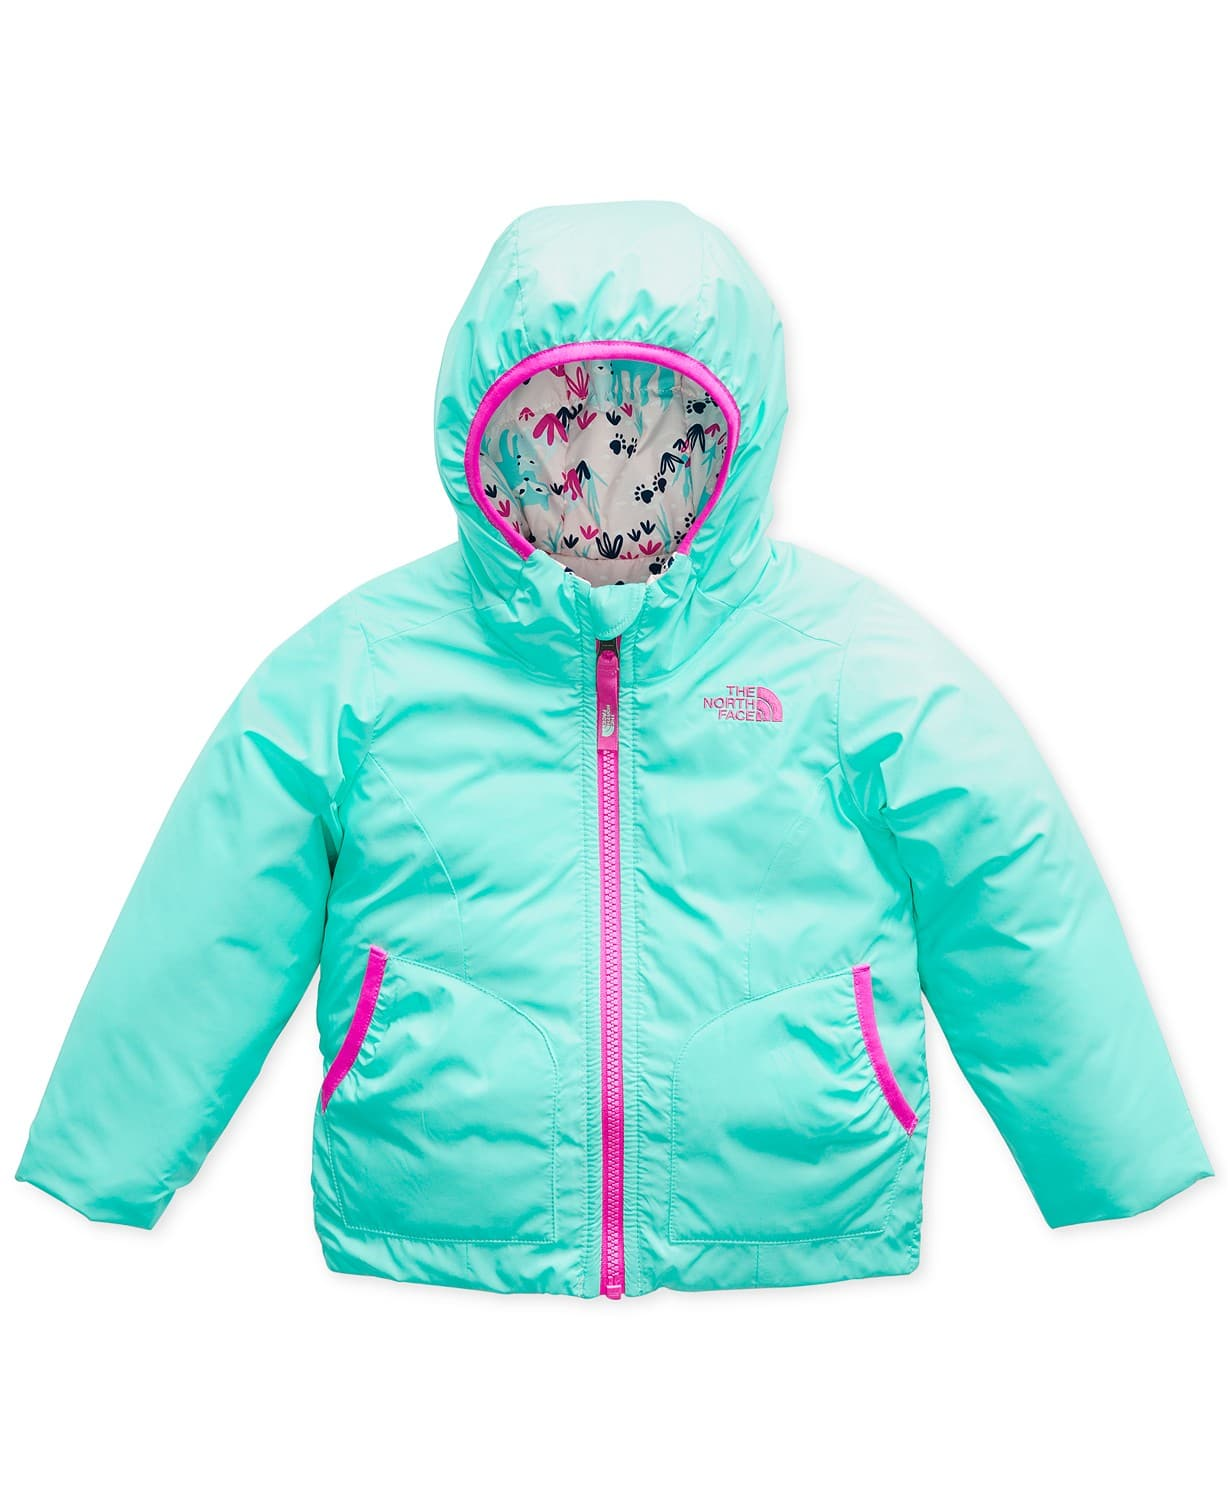 4cd9c39da The North Face Kids Jackets Sale  Boys from  28